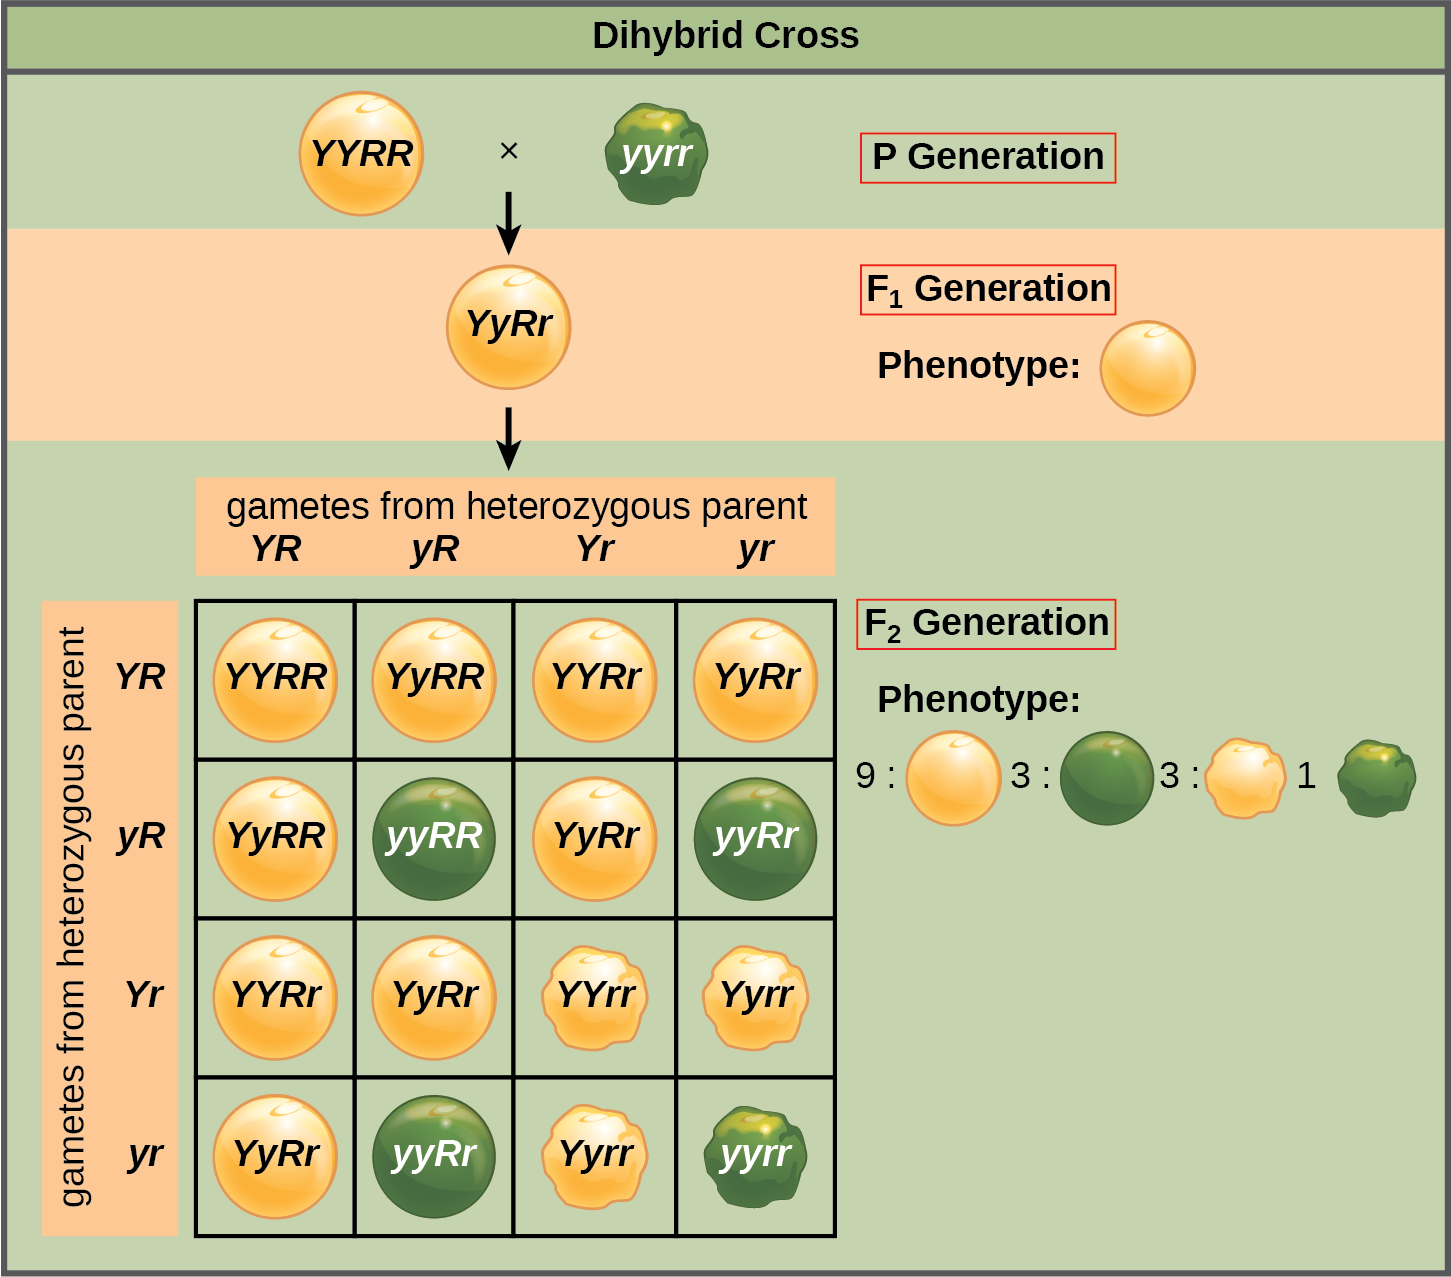 This illustration shows a dihybrid cross between pea plants. In the P generation, a plant that has the homozygous dominant phenotype of round, yellow peas is crossed with a plant with the homozygous recessive phenotype of wrinkled, green peas. The resulting F_{1} offspring have a heterozygous genotype and round, yellow peas. Self-pollination of the F_{1} generation results in F_{2} offspring with a phenotypic ratio of 9:3:3:1 for yellow round, green round, yellow wrinkled and green wrinkled peas, respectively.